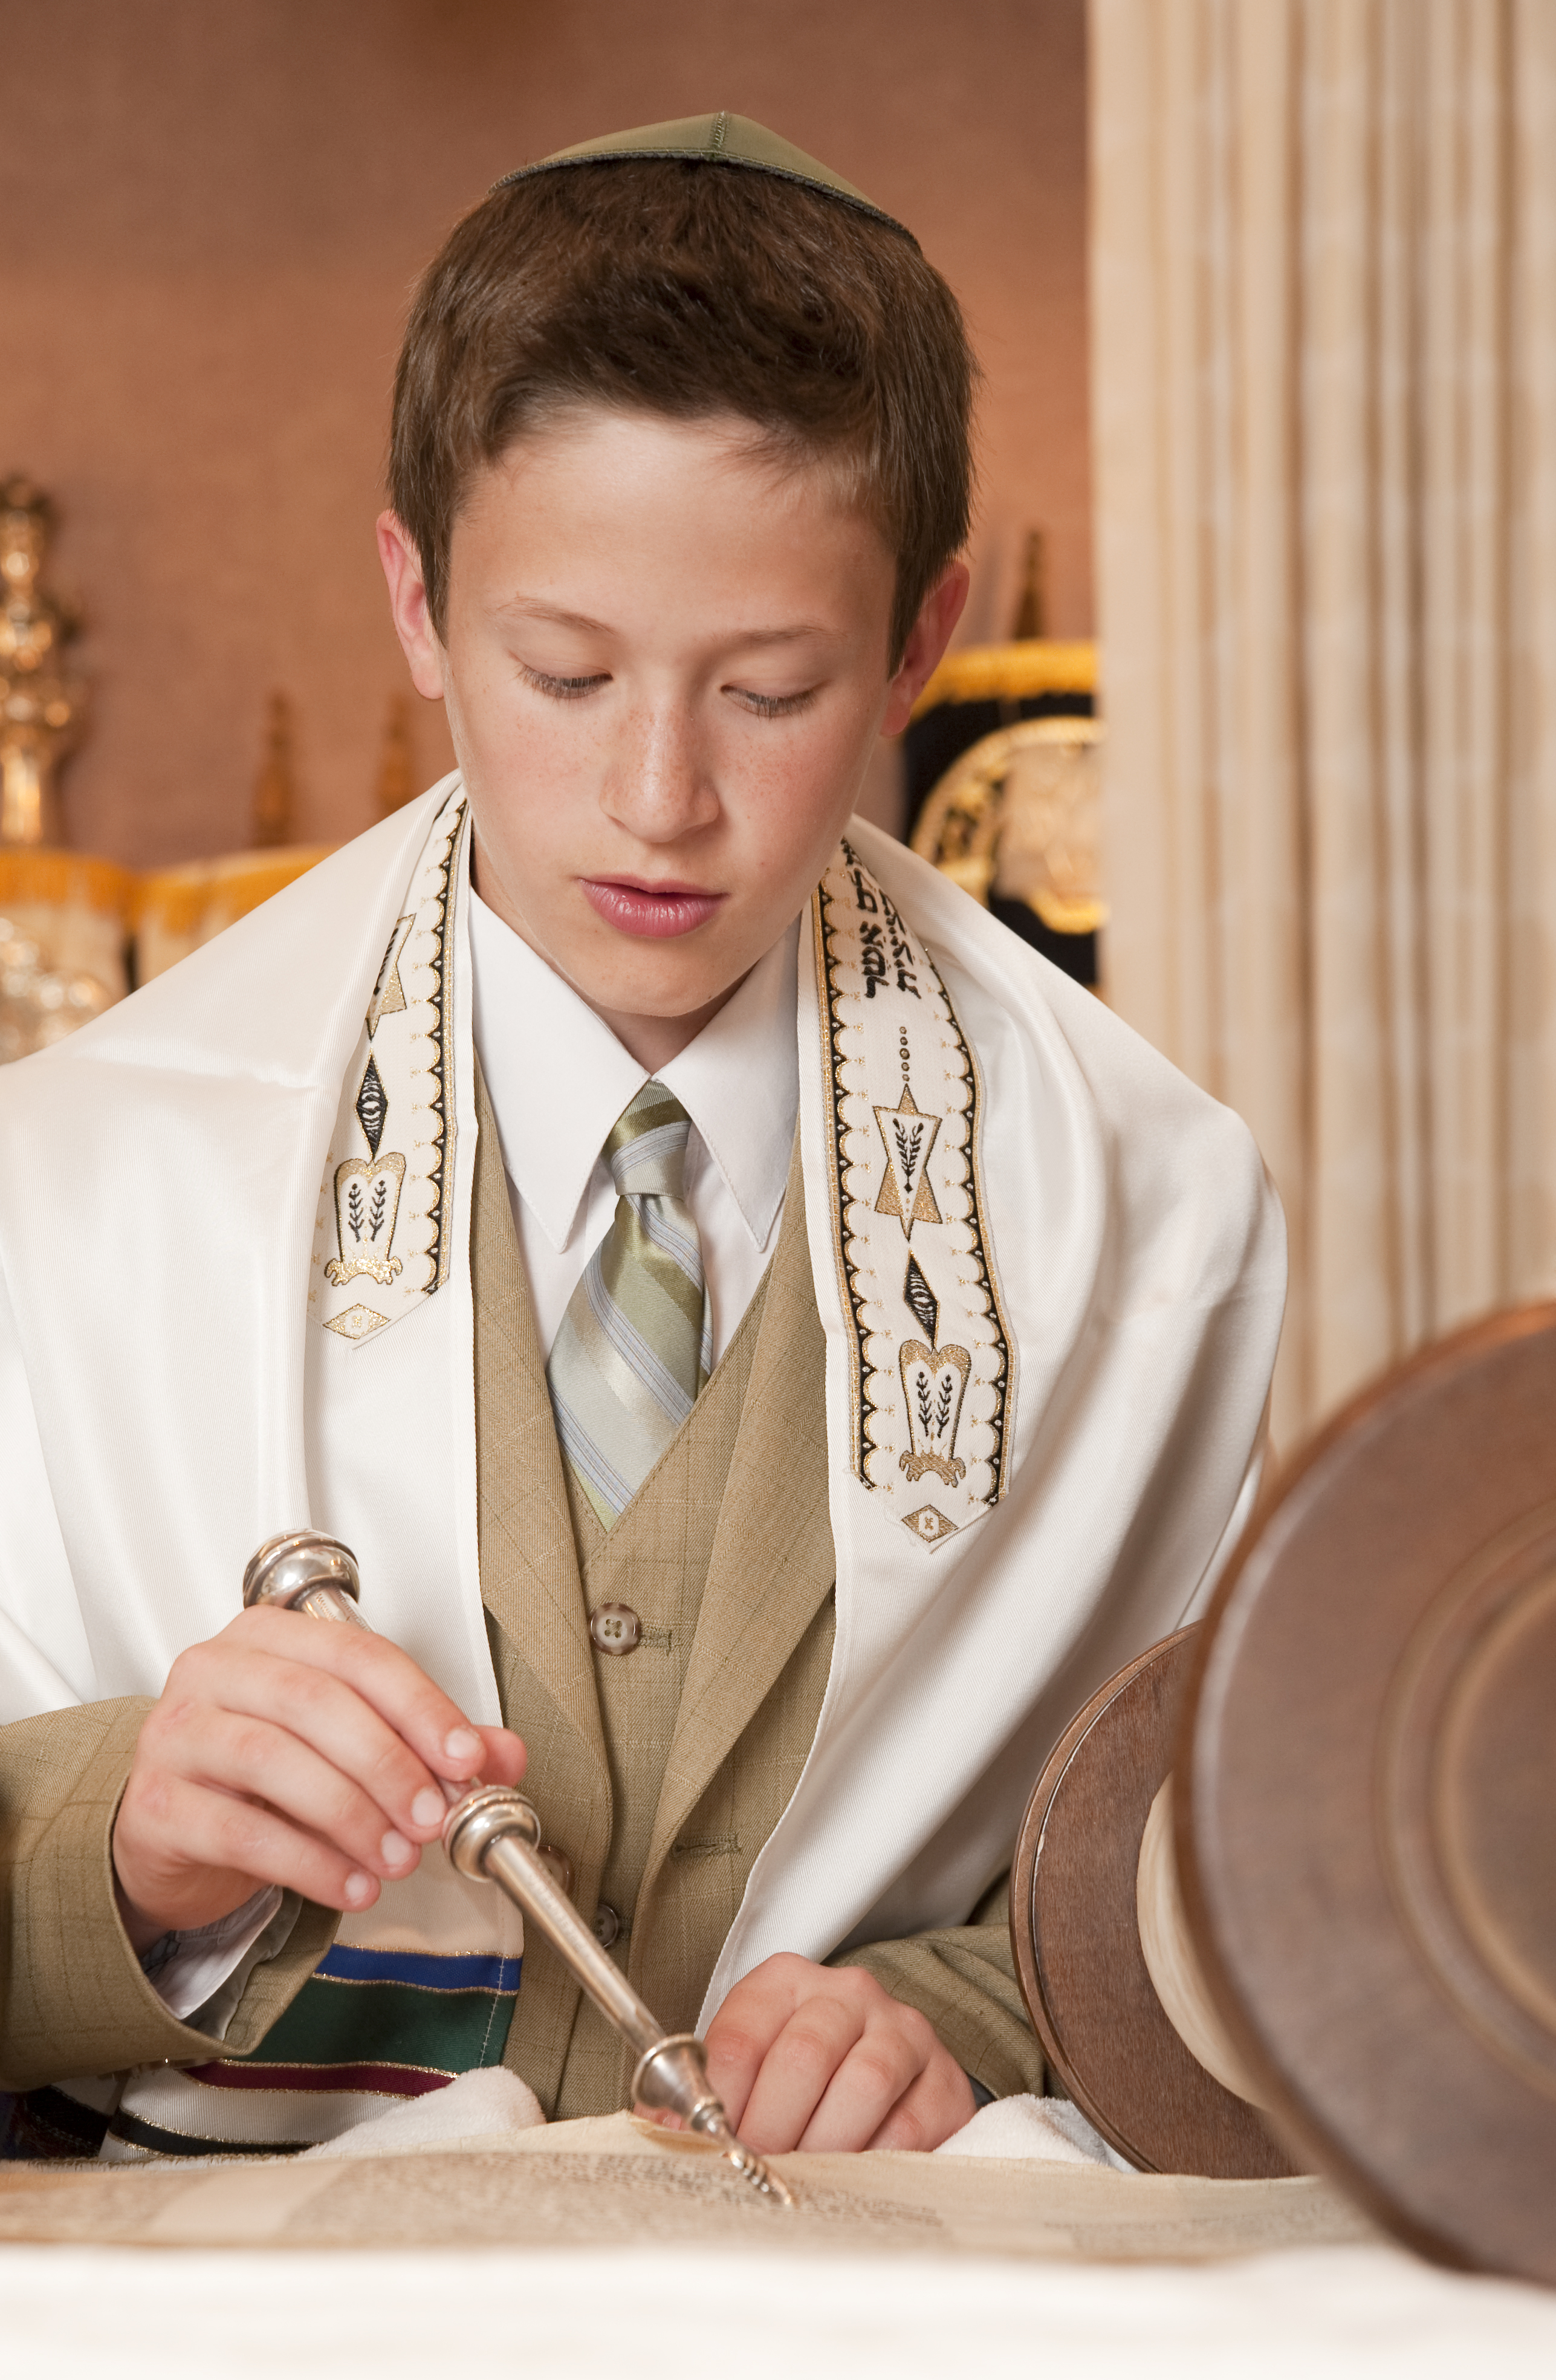 Advice To A Bar Or Bat Mitzvah In Today's World ...